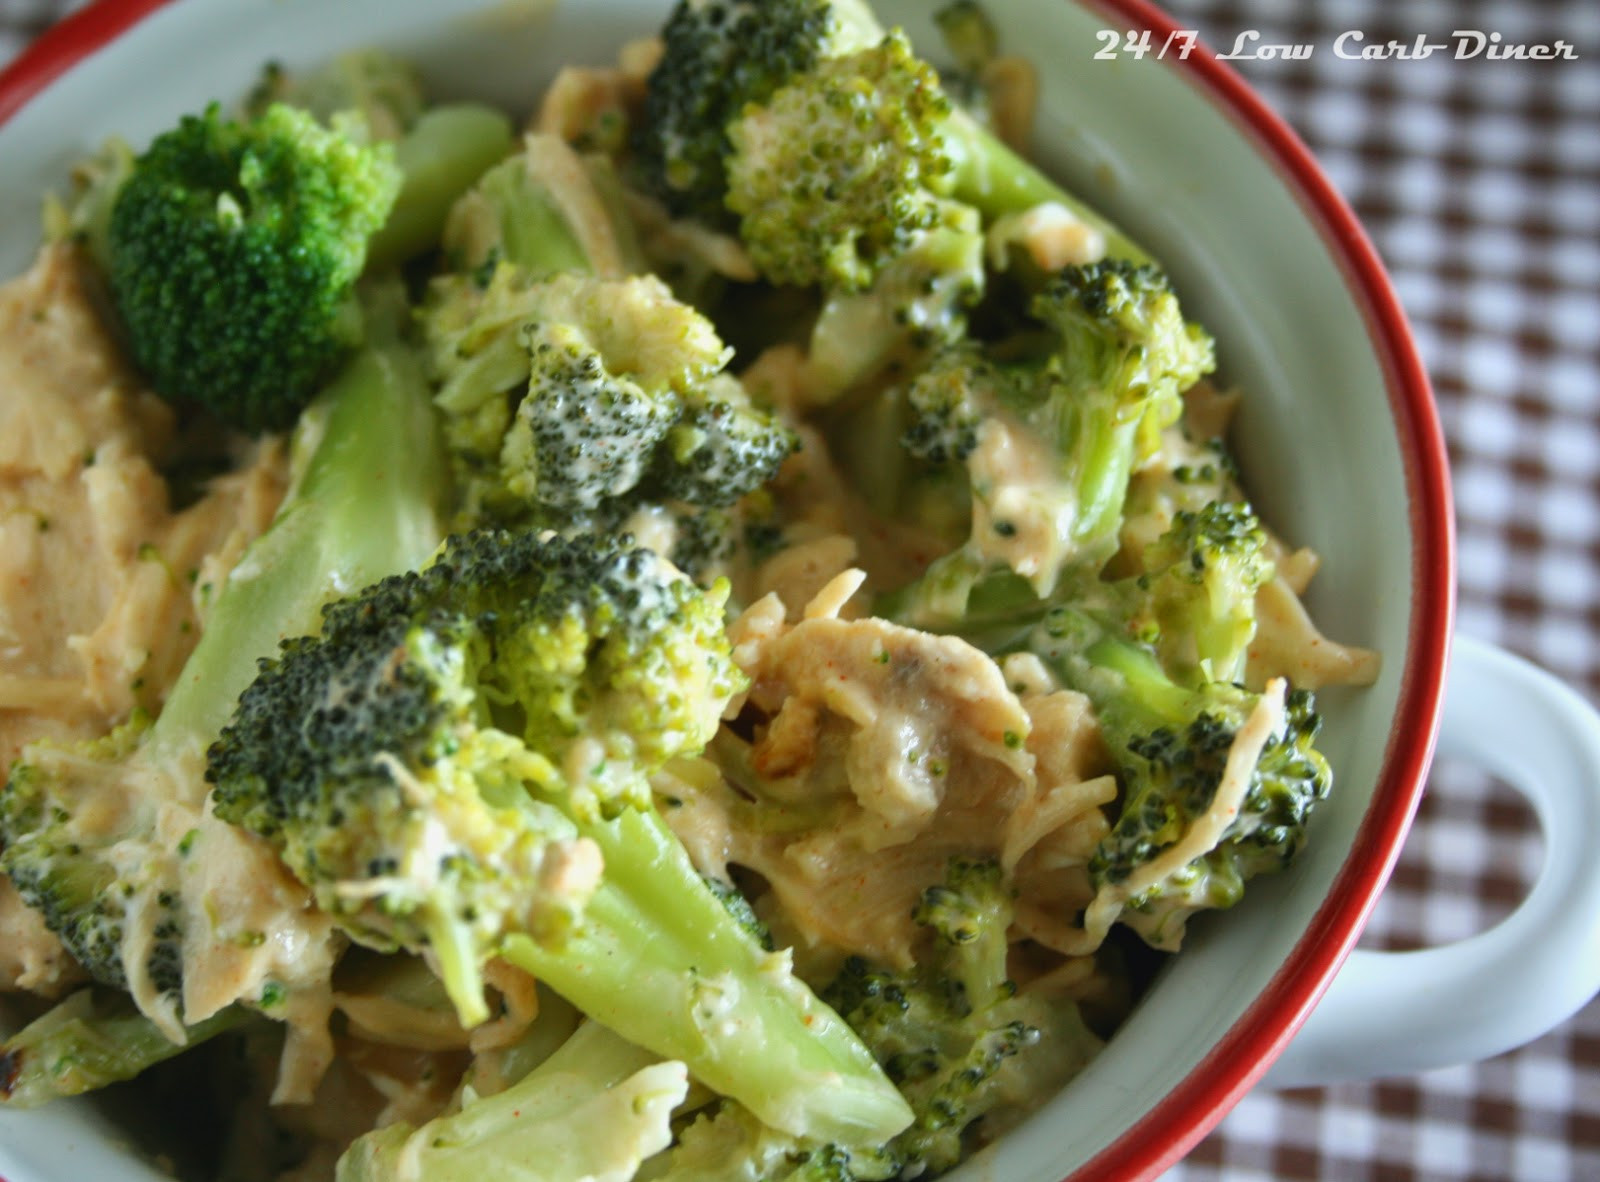 Chicken Brocolli And Cheese Casserole  24 7 Low Carb Diner Chicken and Broccoli Casserole for 2